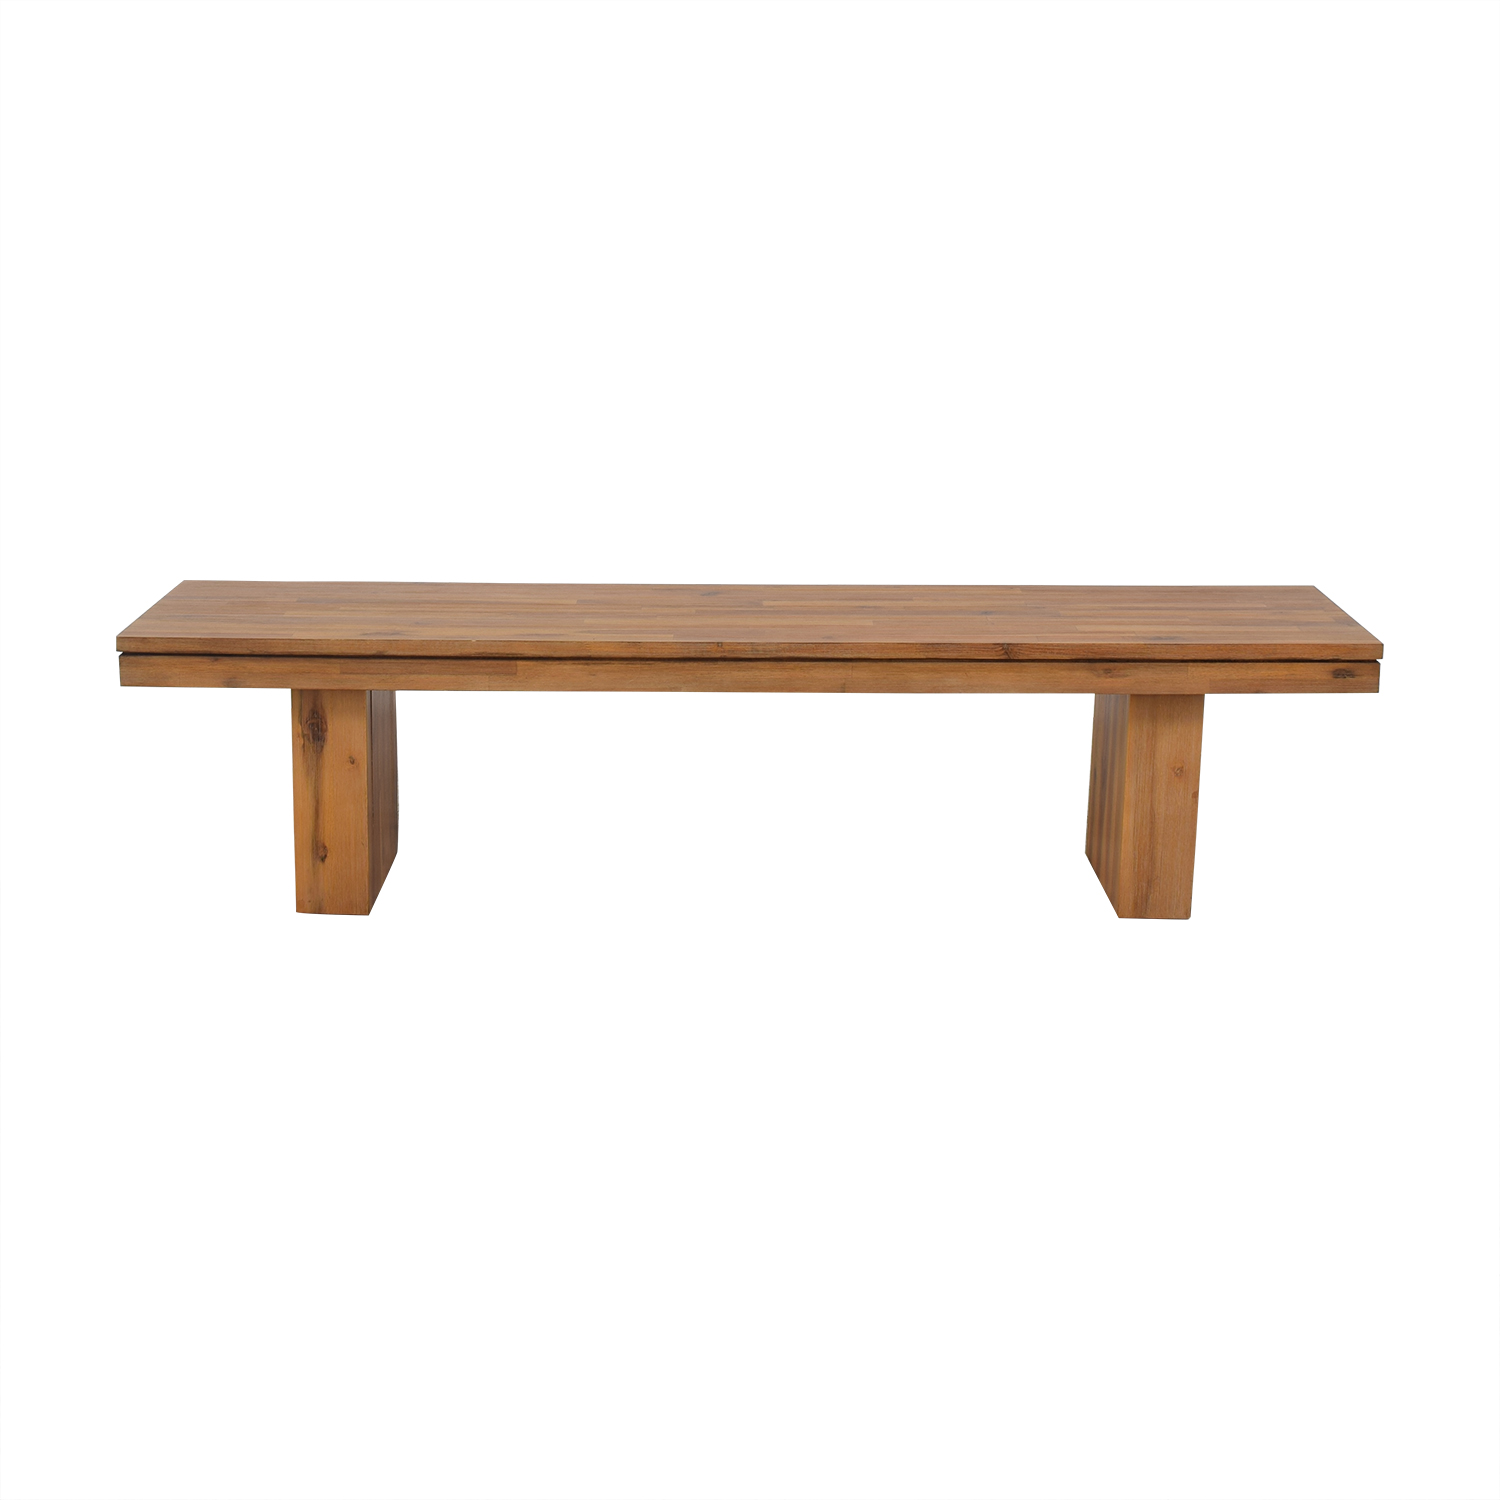 Cresent Fine Furniture Bench / Benches